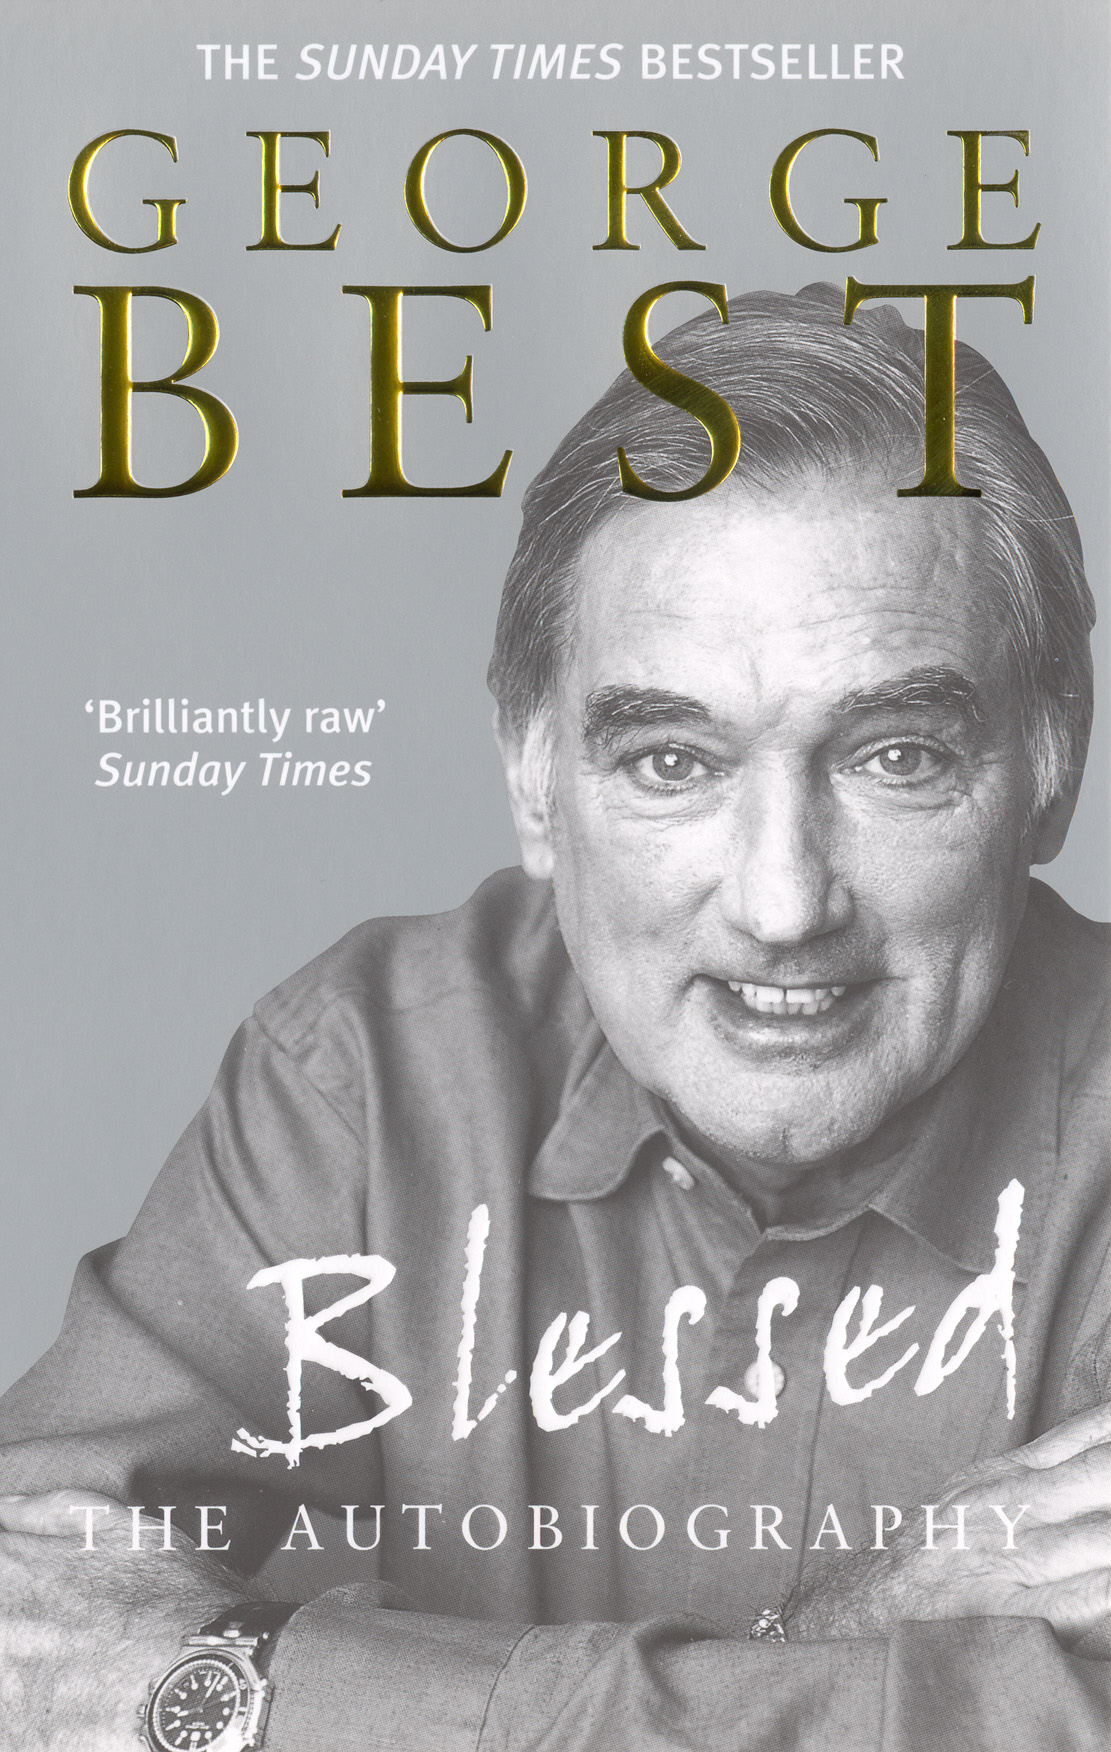 Blessed - The Autobiography